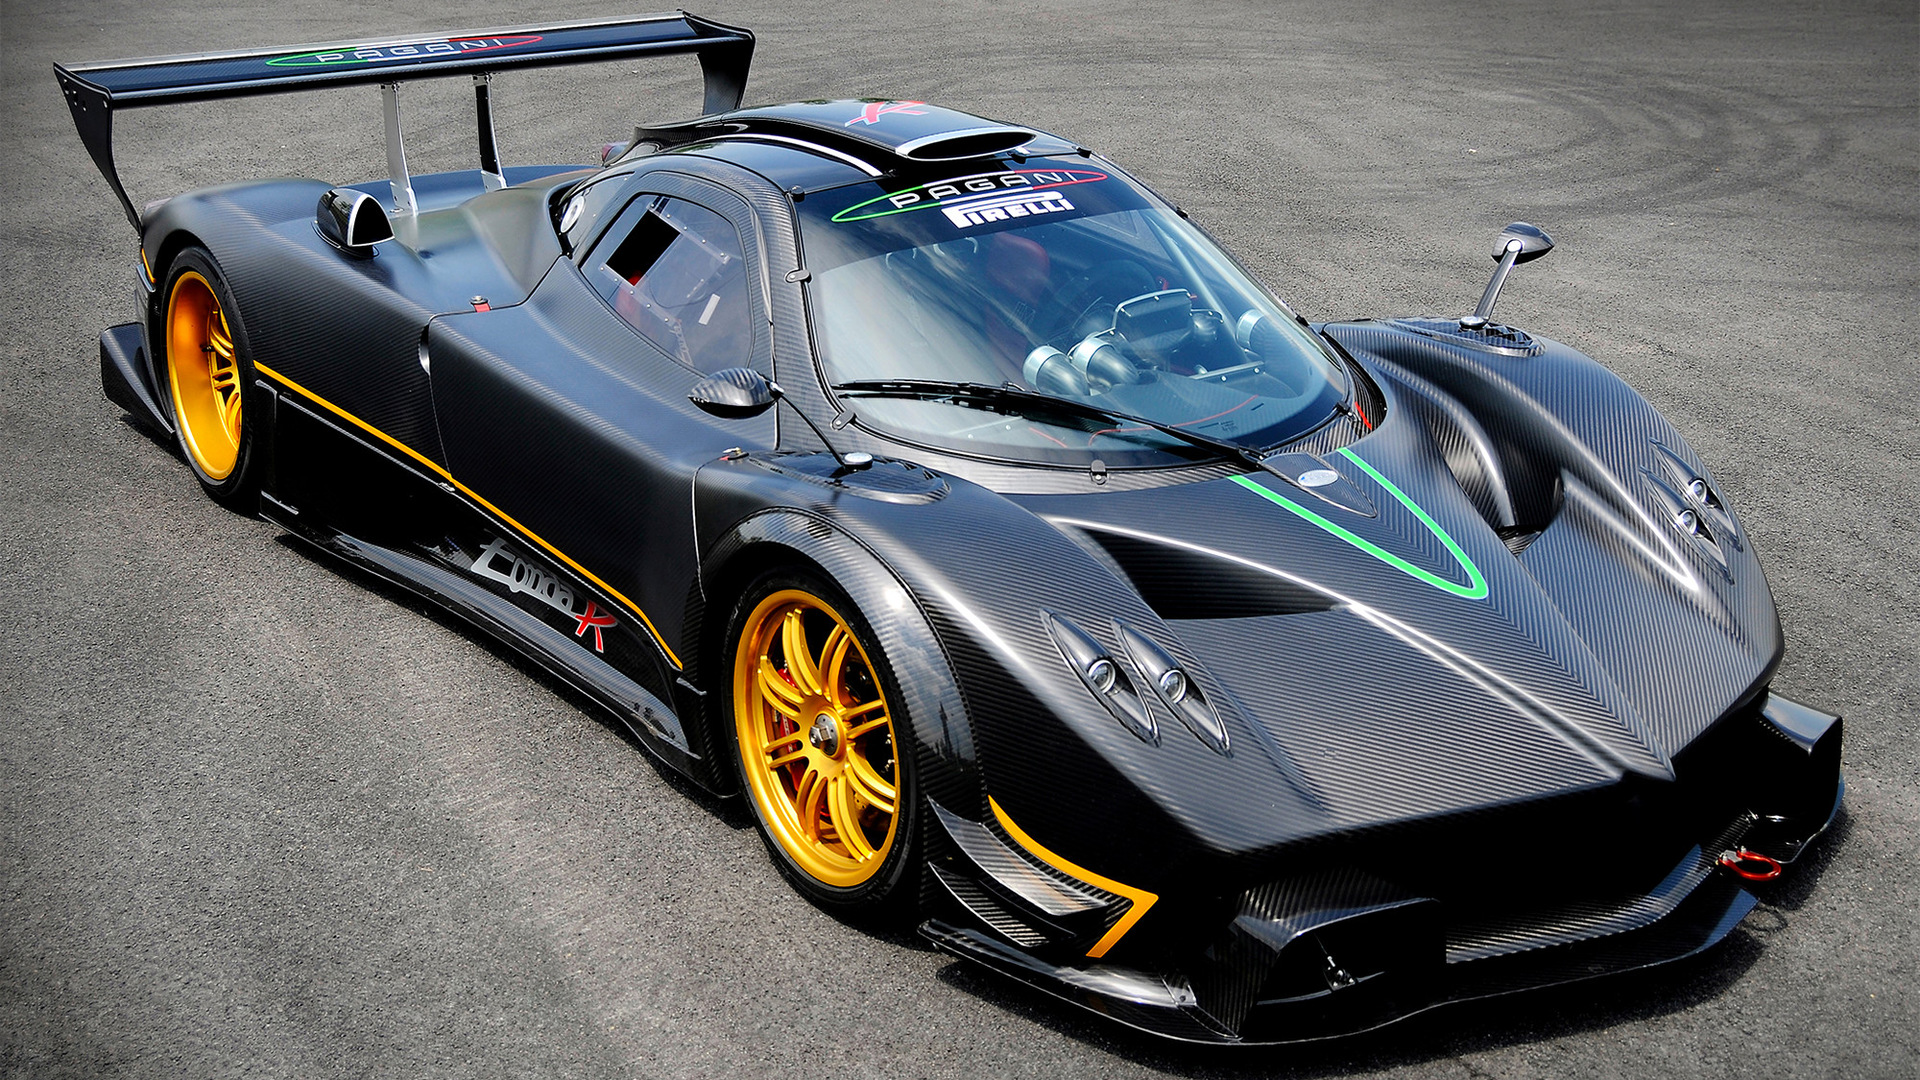 pagani zonda r (2010) wallpapers and hd images - car pixel